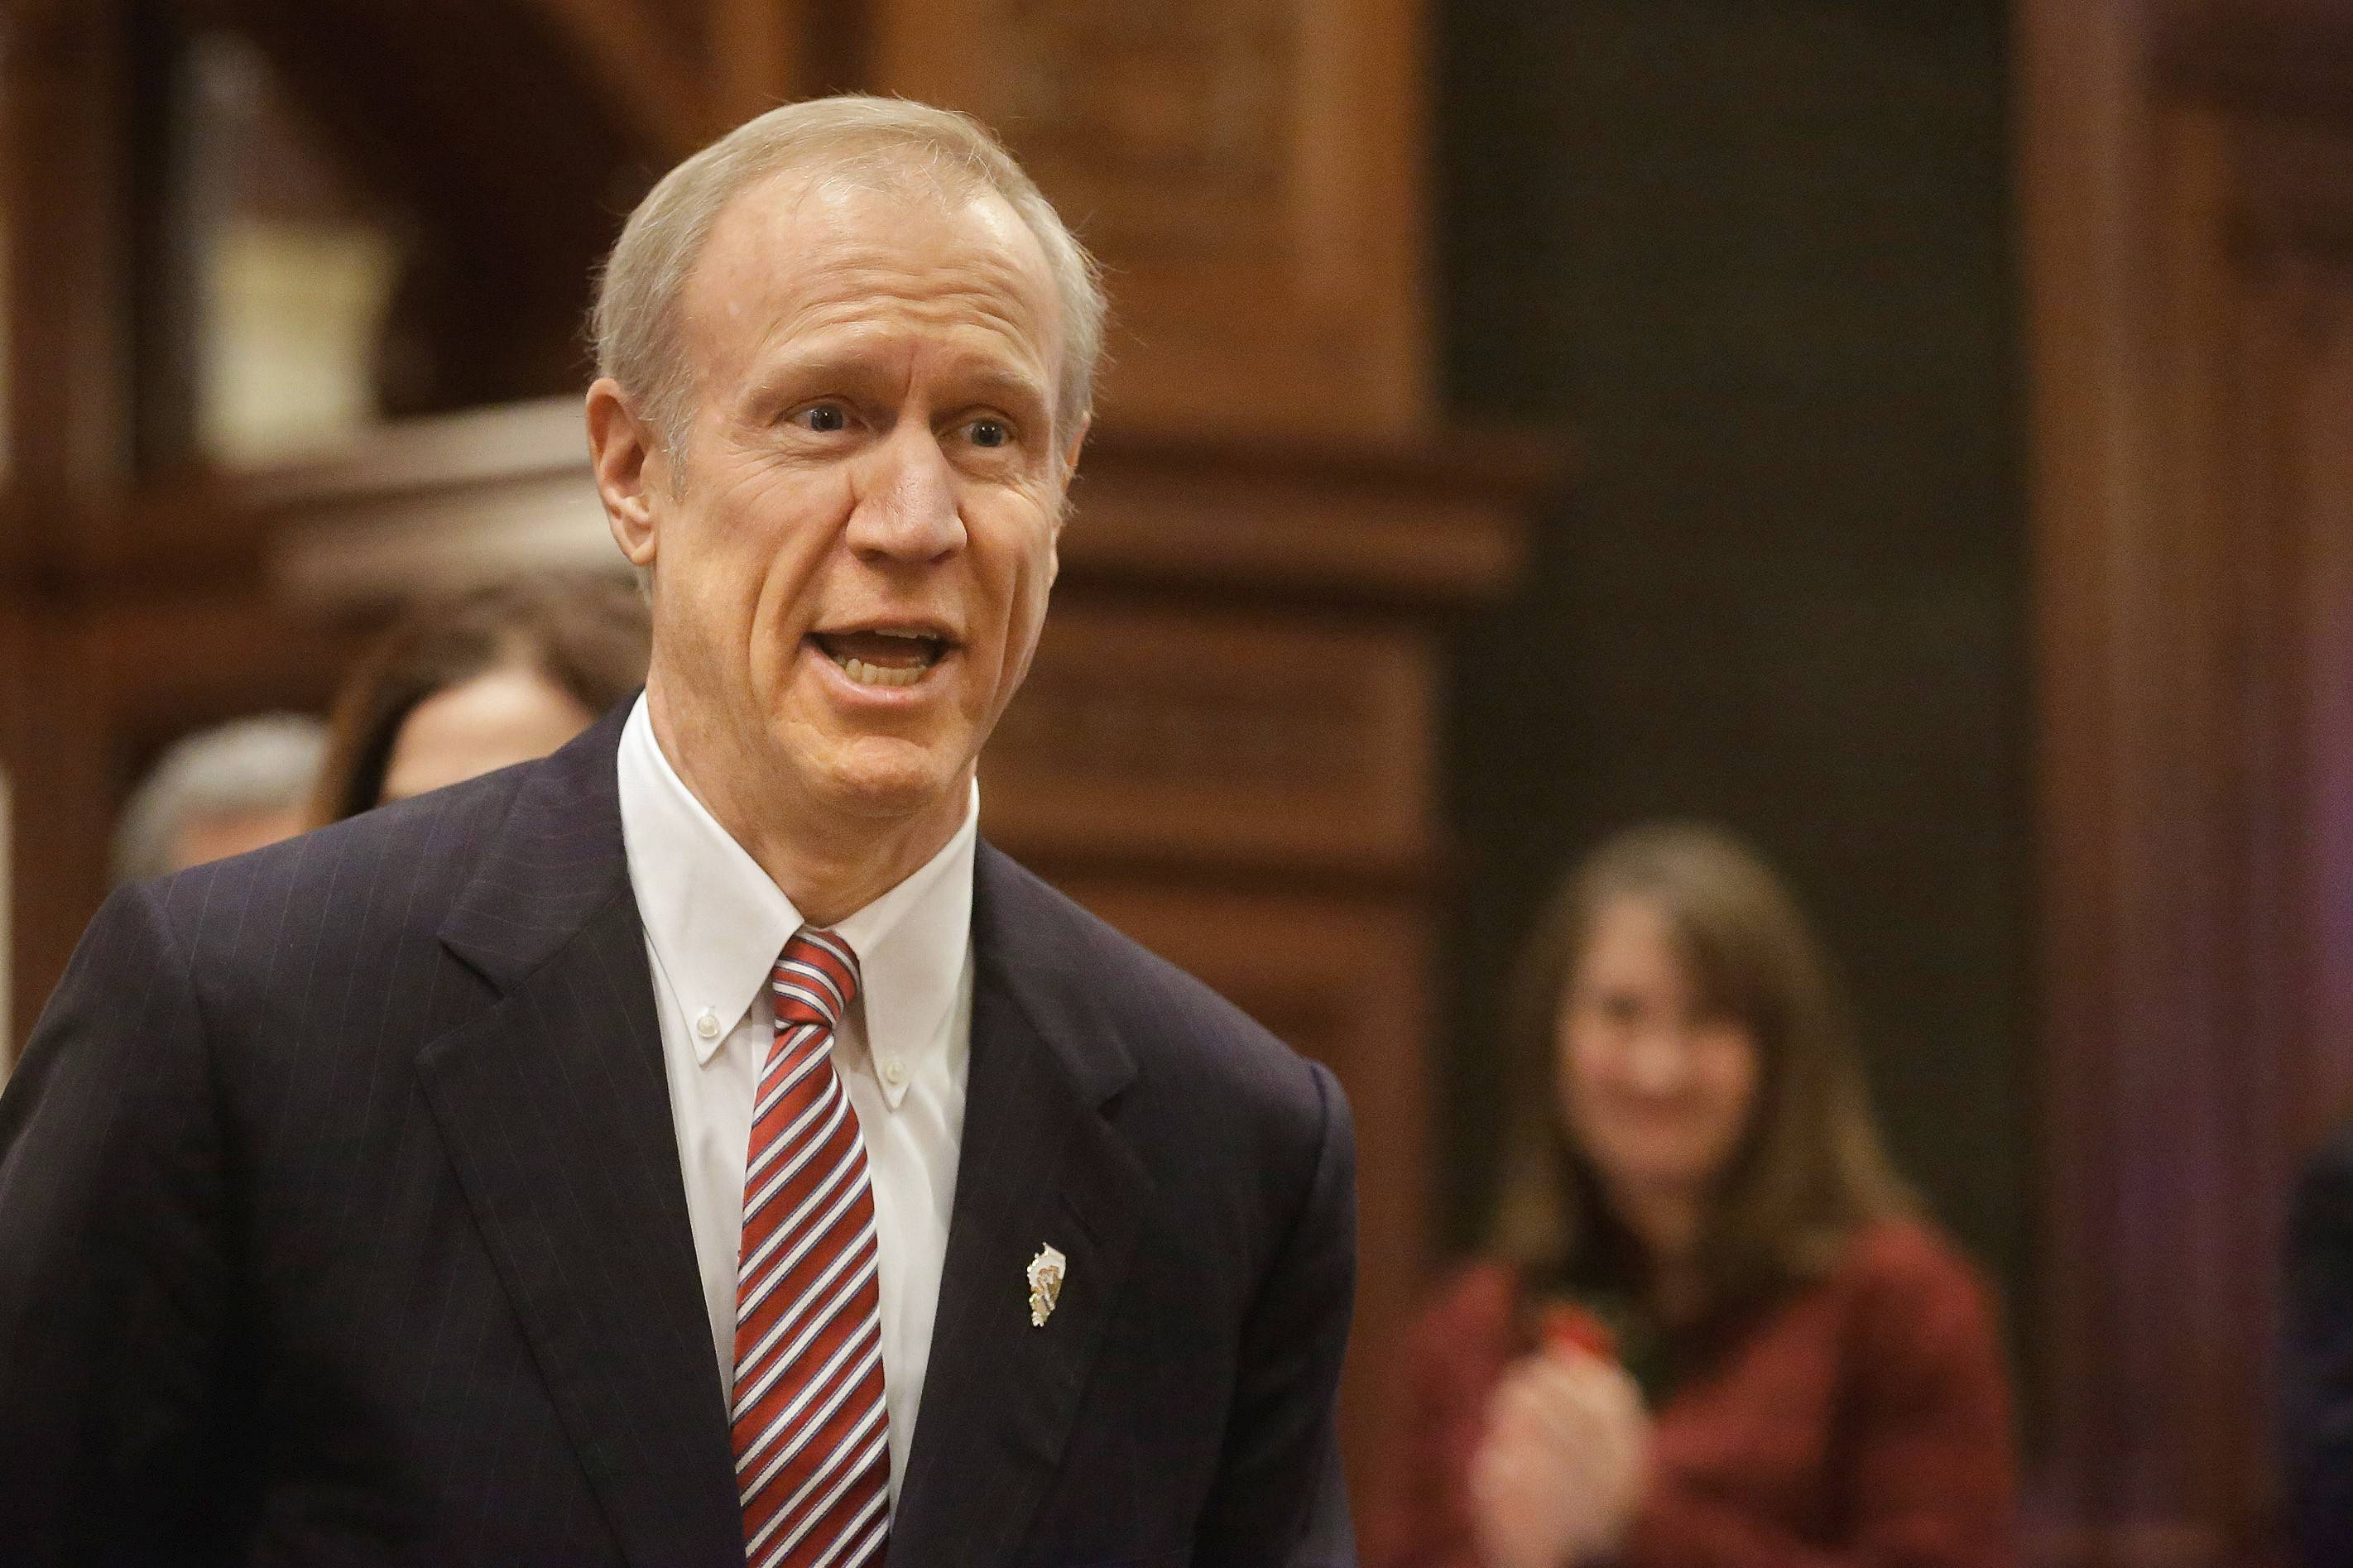 Rauner details property tax freeze, but will it happen?